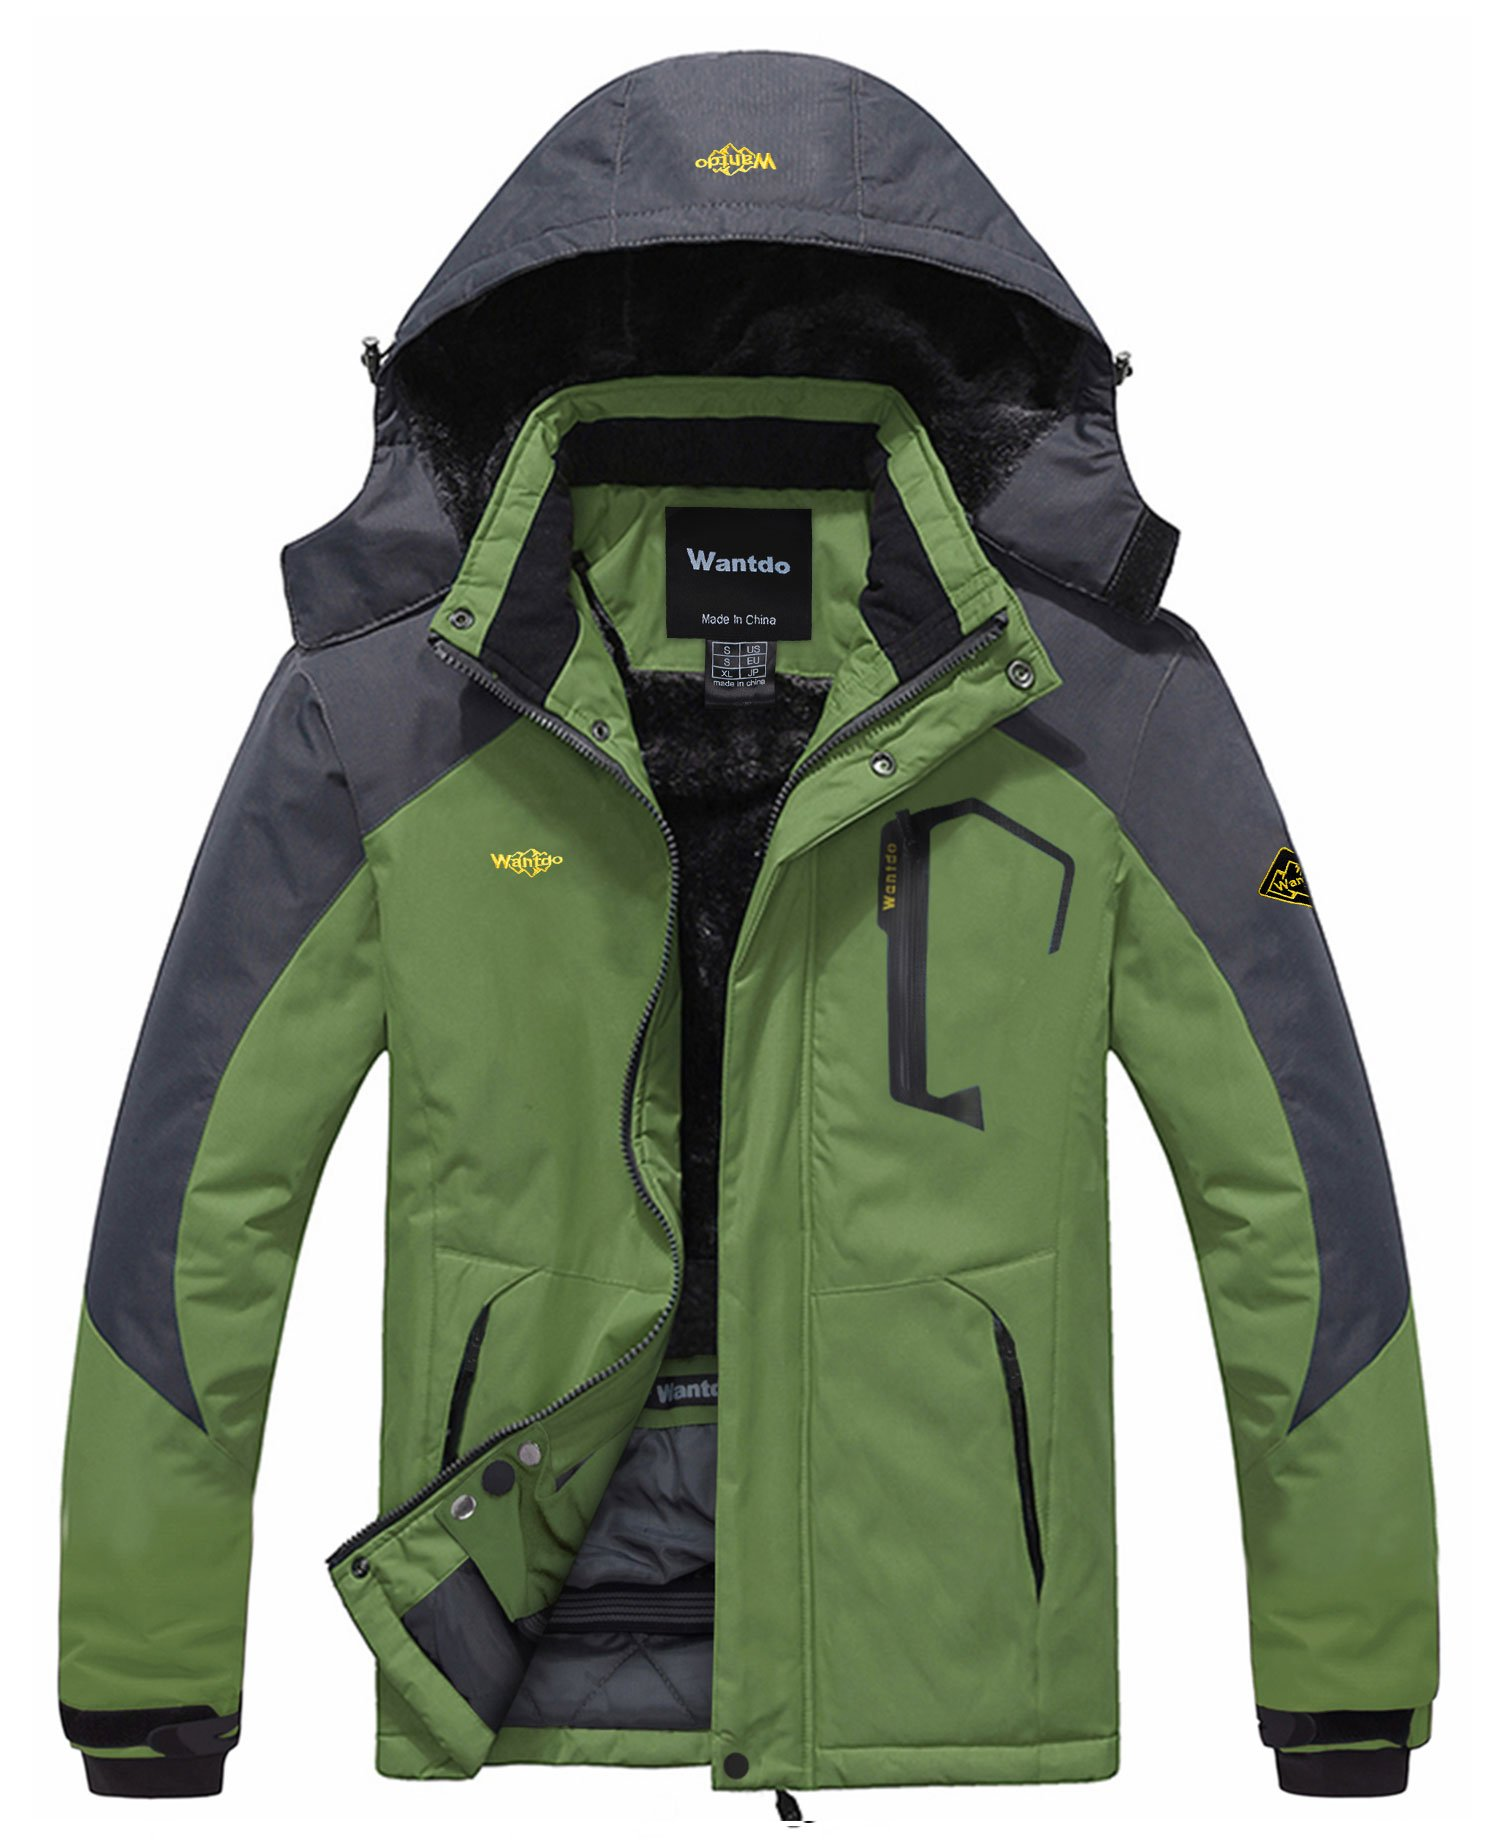 Wantdo Men's Waterproof Mountain Jacket Fleece Windproof Ski Jacket US L  Grass Green L by Wantdo